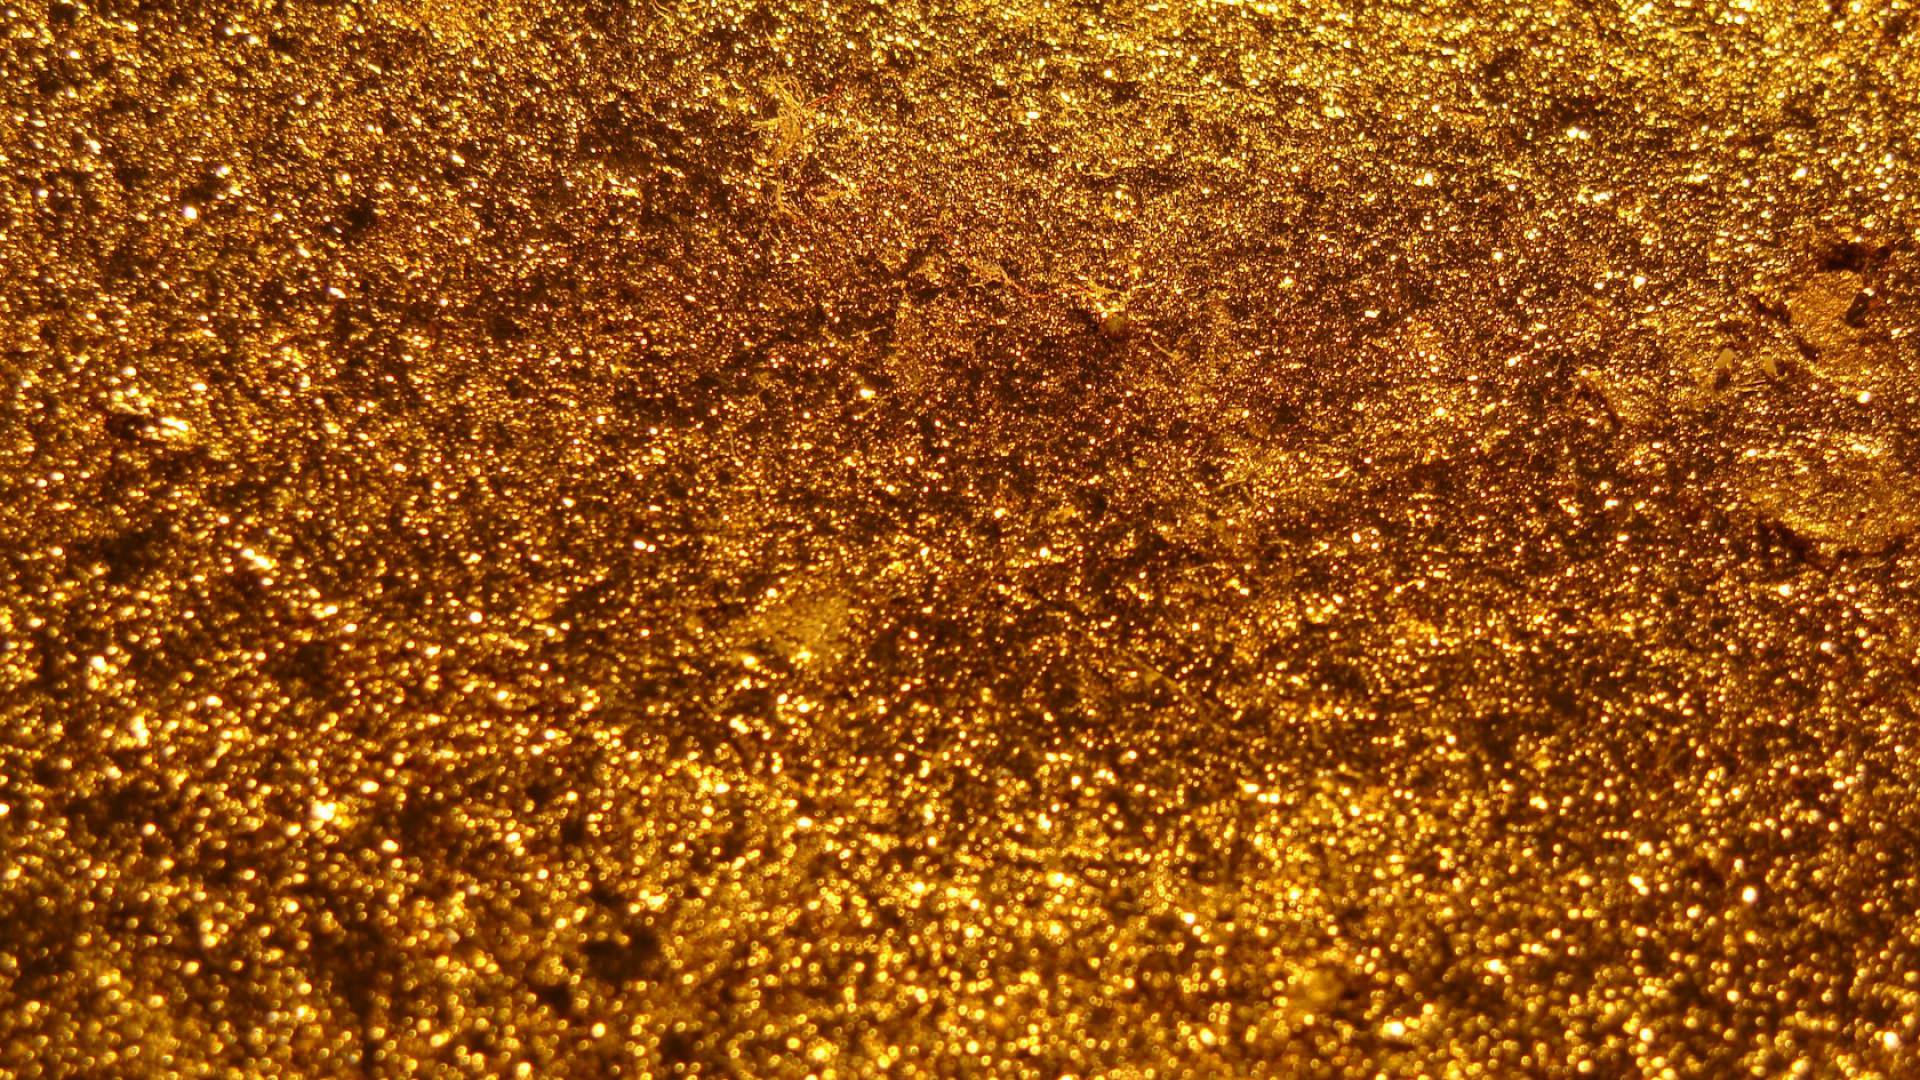 HD Gold Background